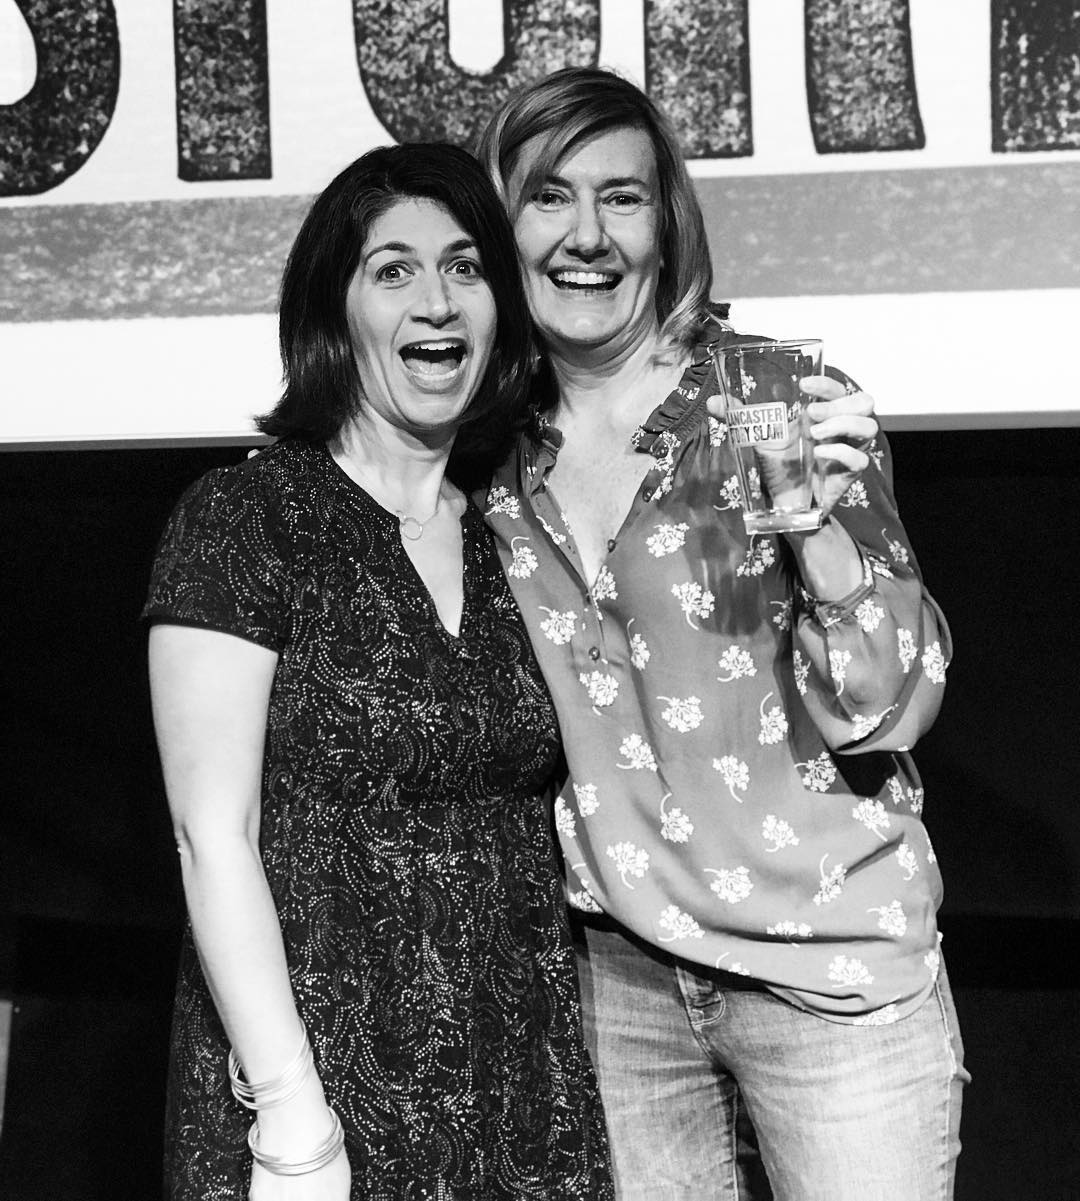 Shown above are emcee Jamie Beth Cohen with our April winner, Karen Foerstel, who won the prized pint glass for her 'WTF?' story.